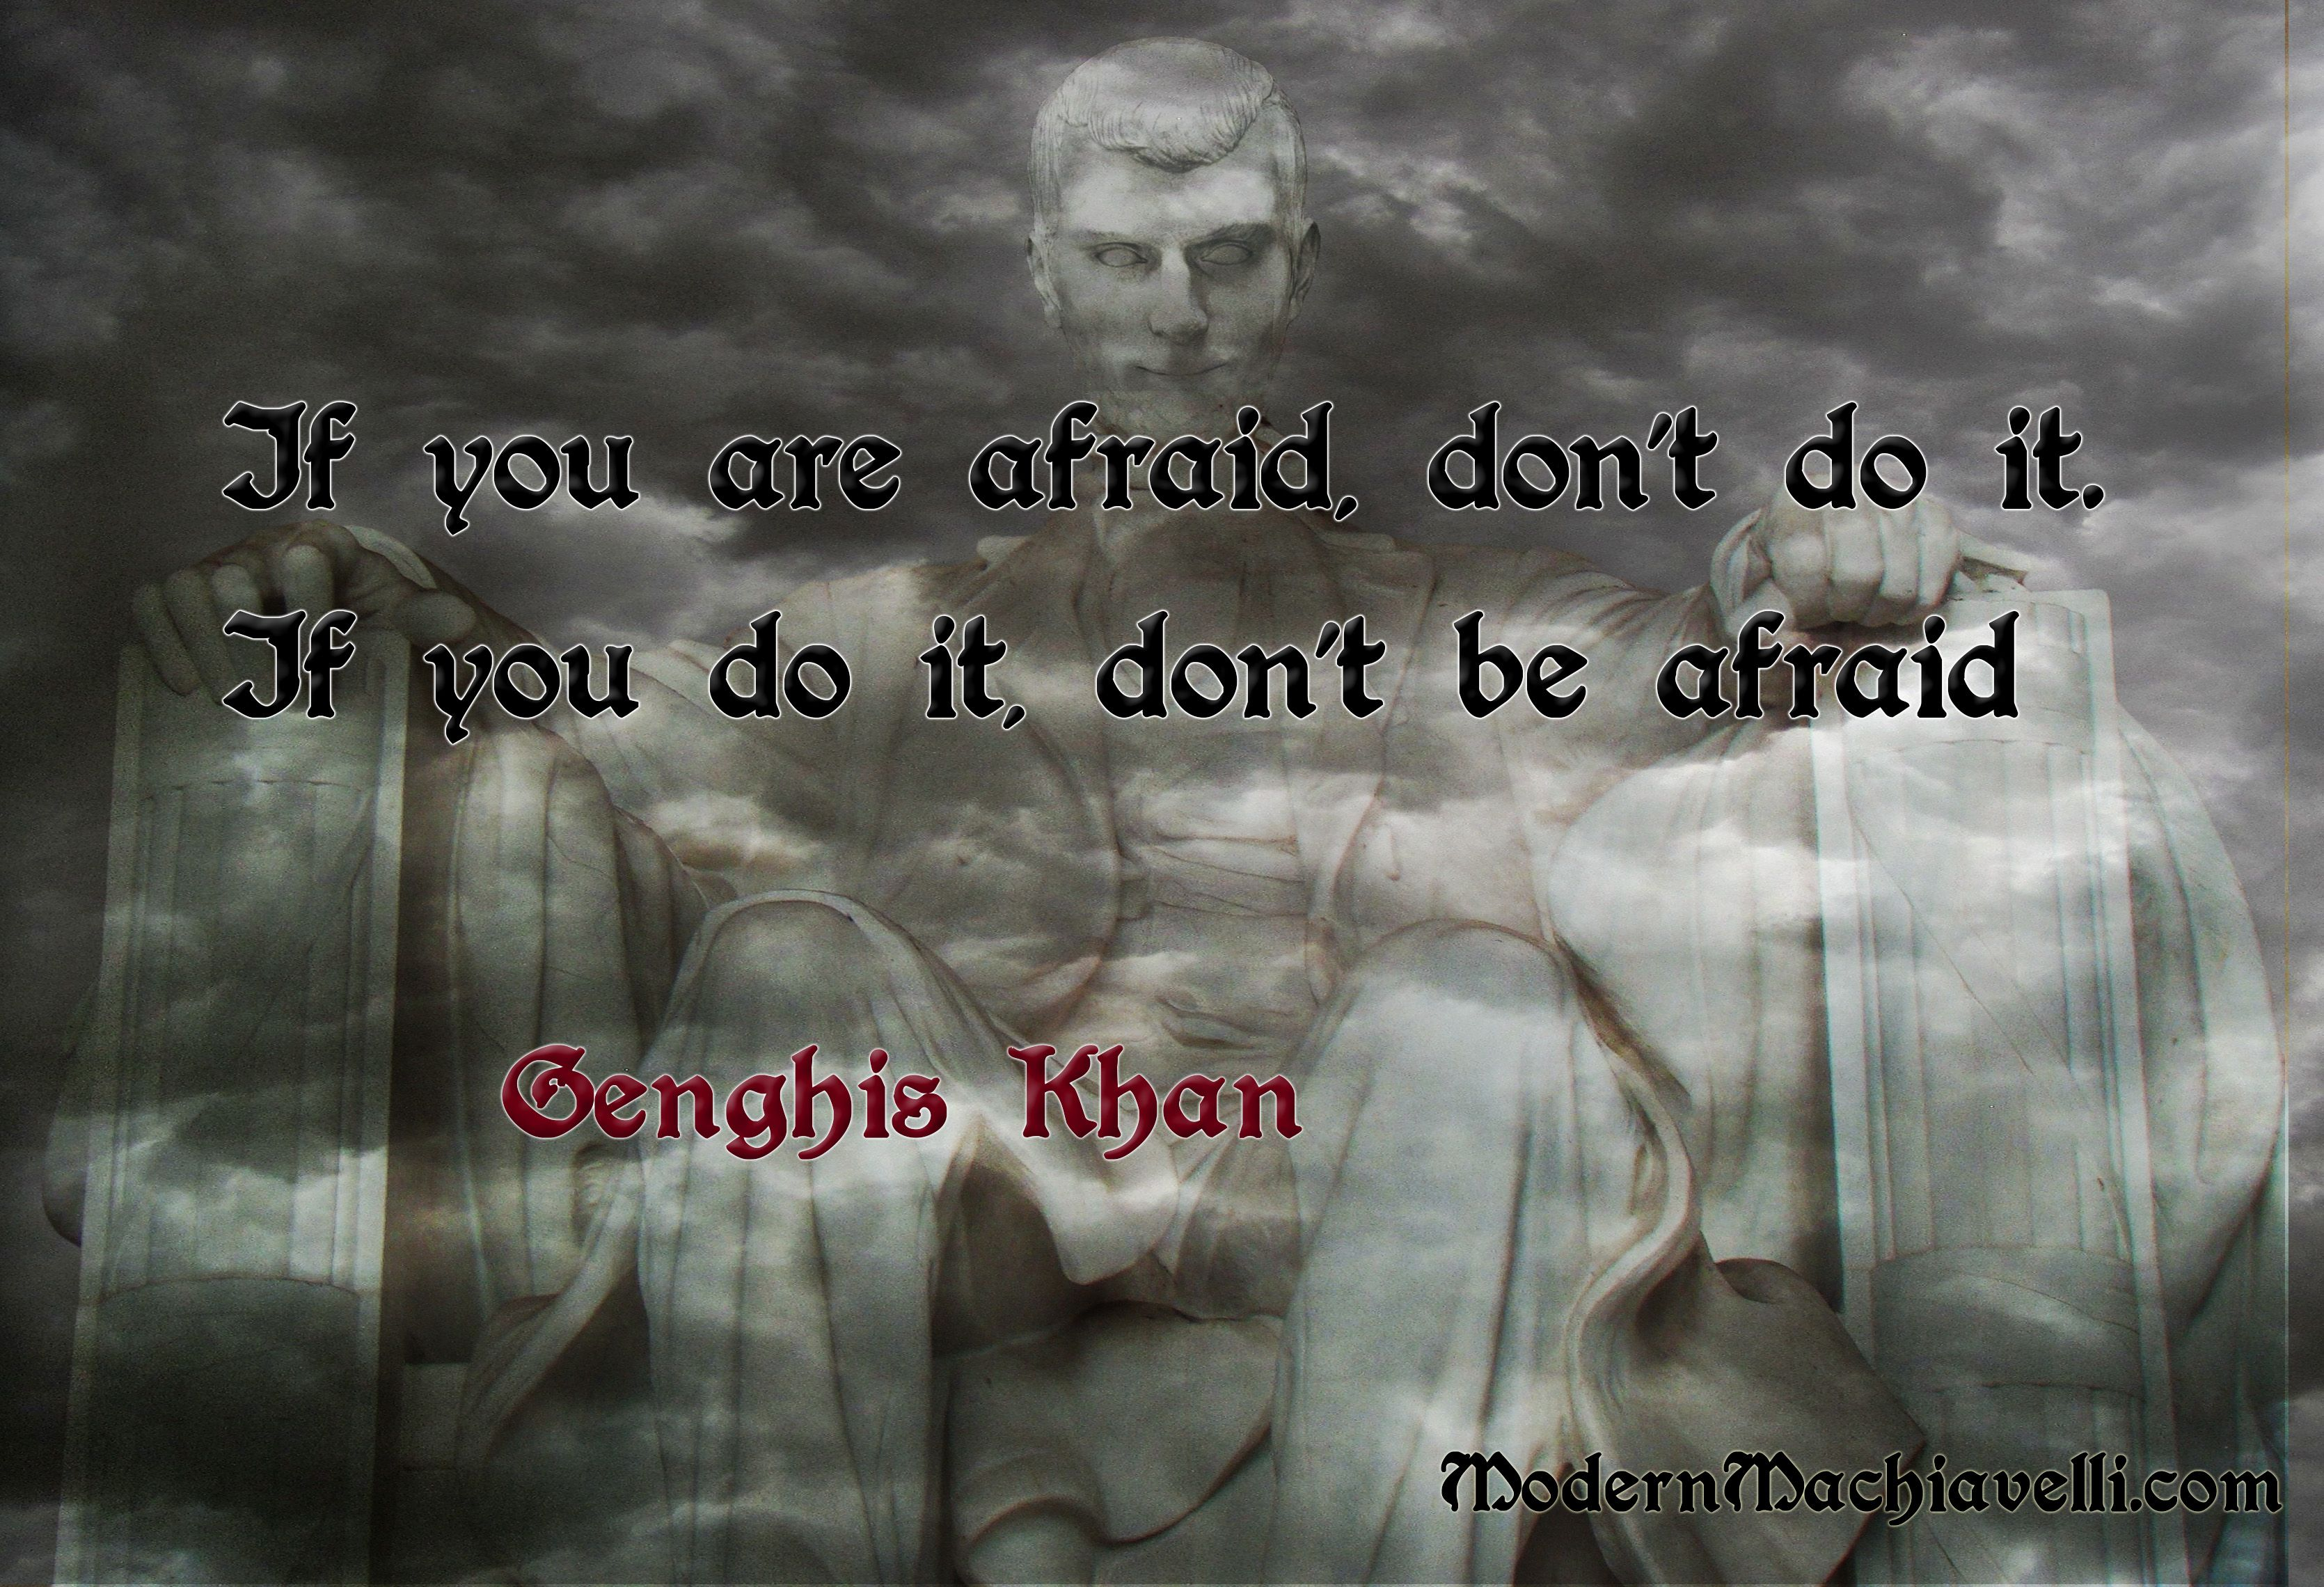 Genghis Khan Quote Quotes Amazing Quotes Best Philosophers